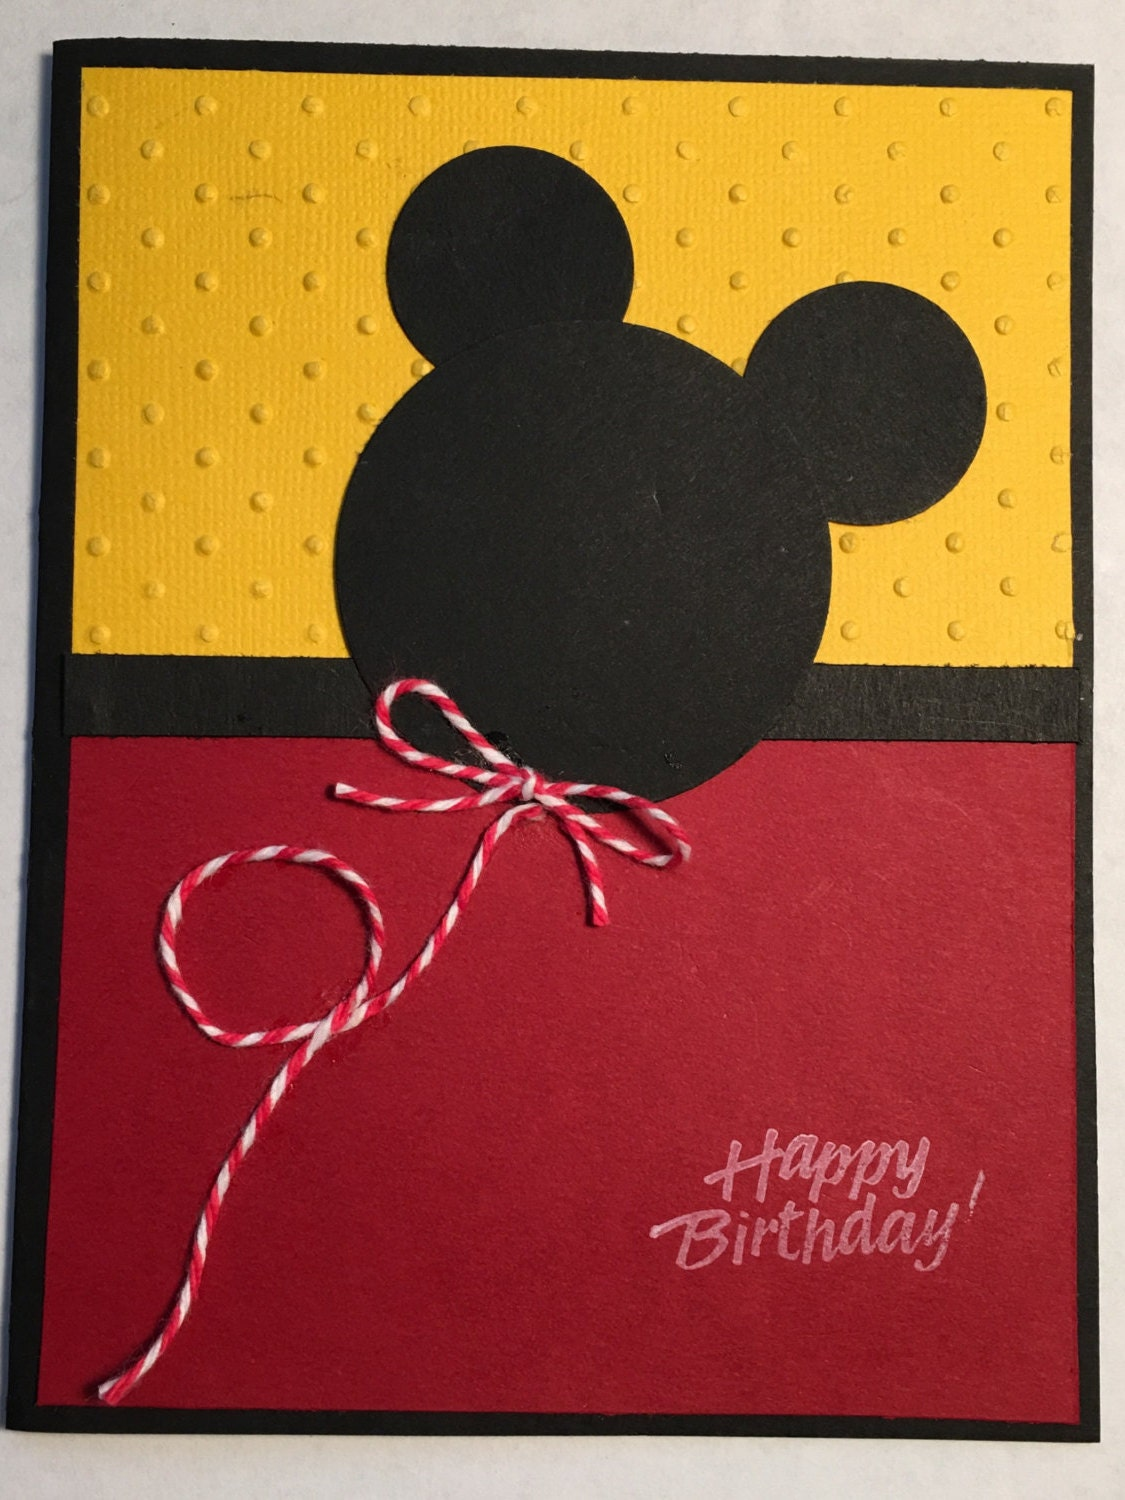 Fun Birthday Cardmicky Mouse Card Happy Birthday Cardskids Etsy